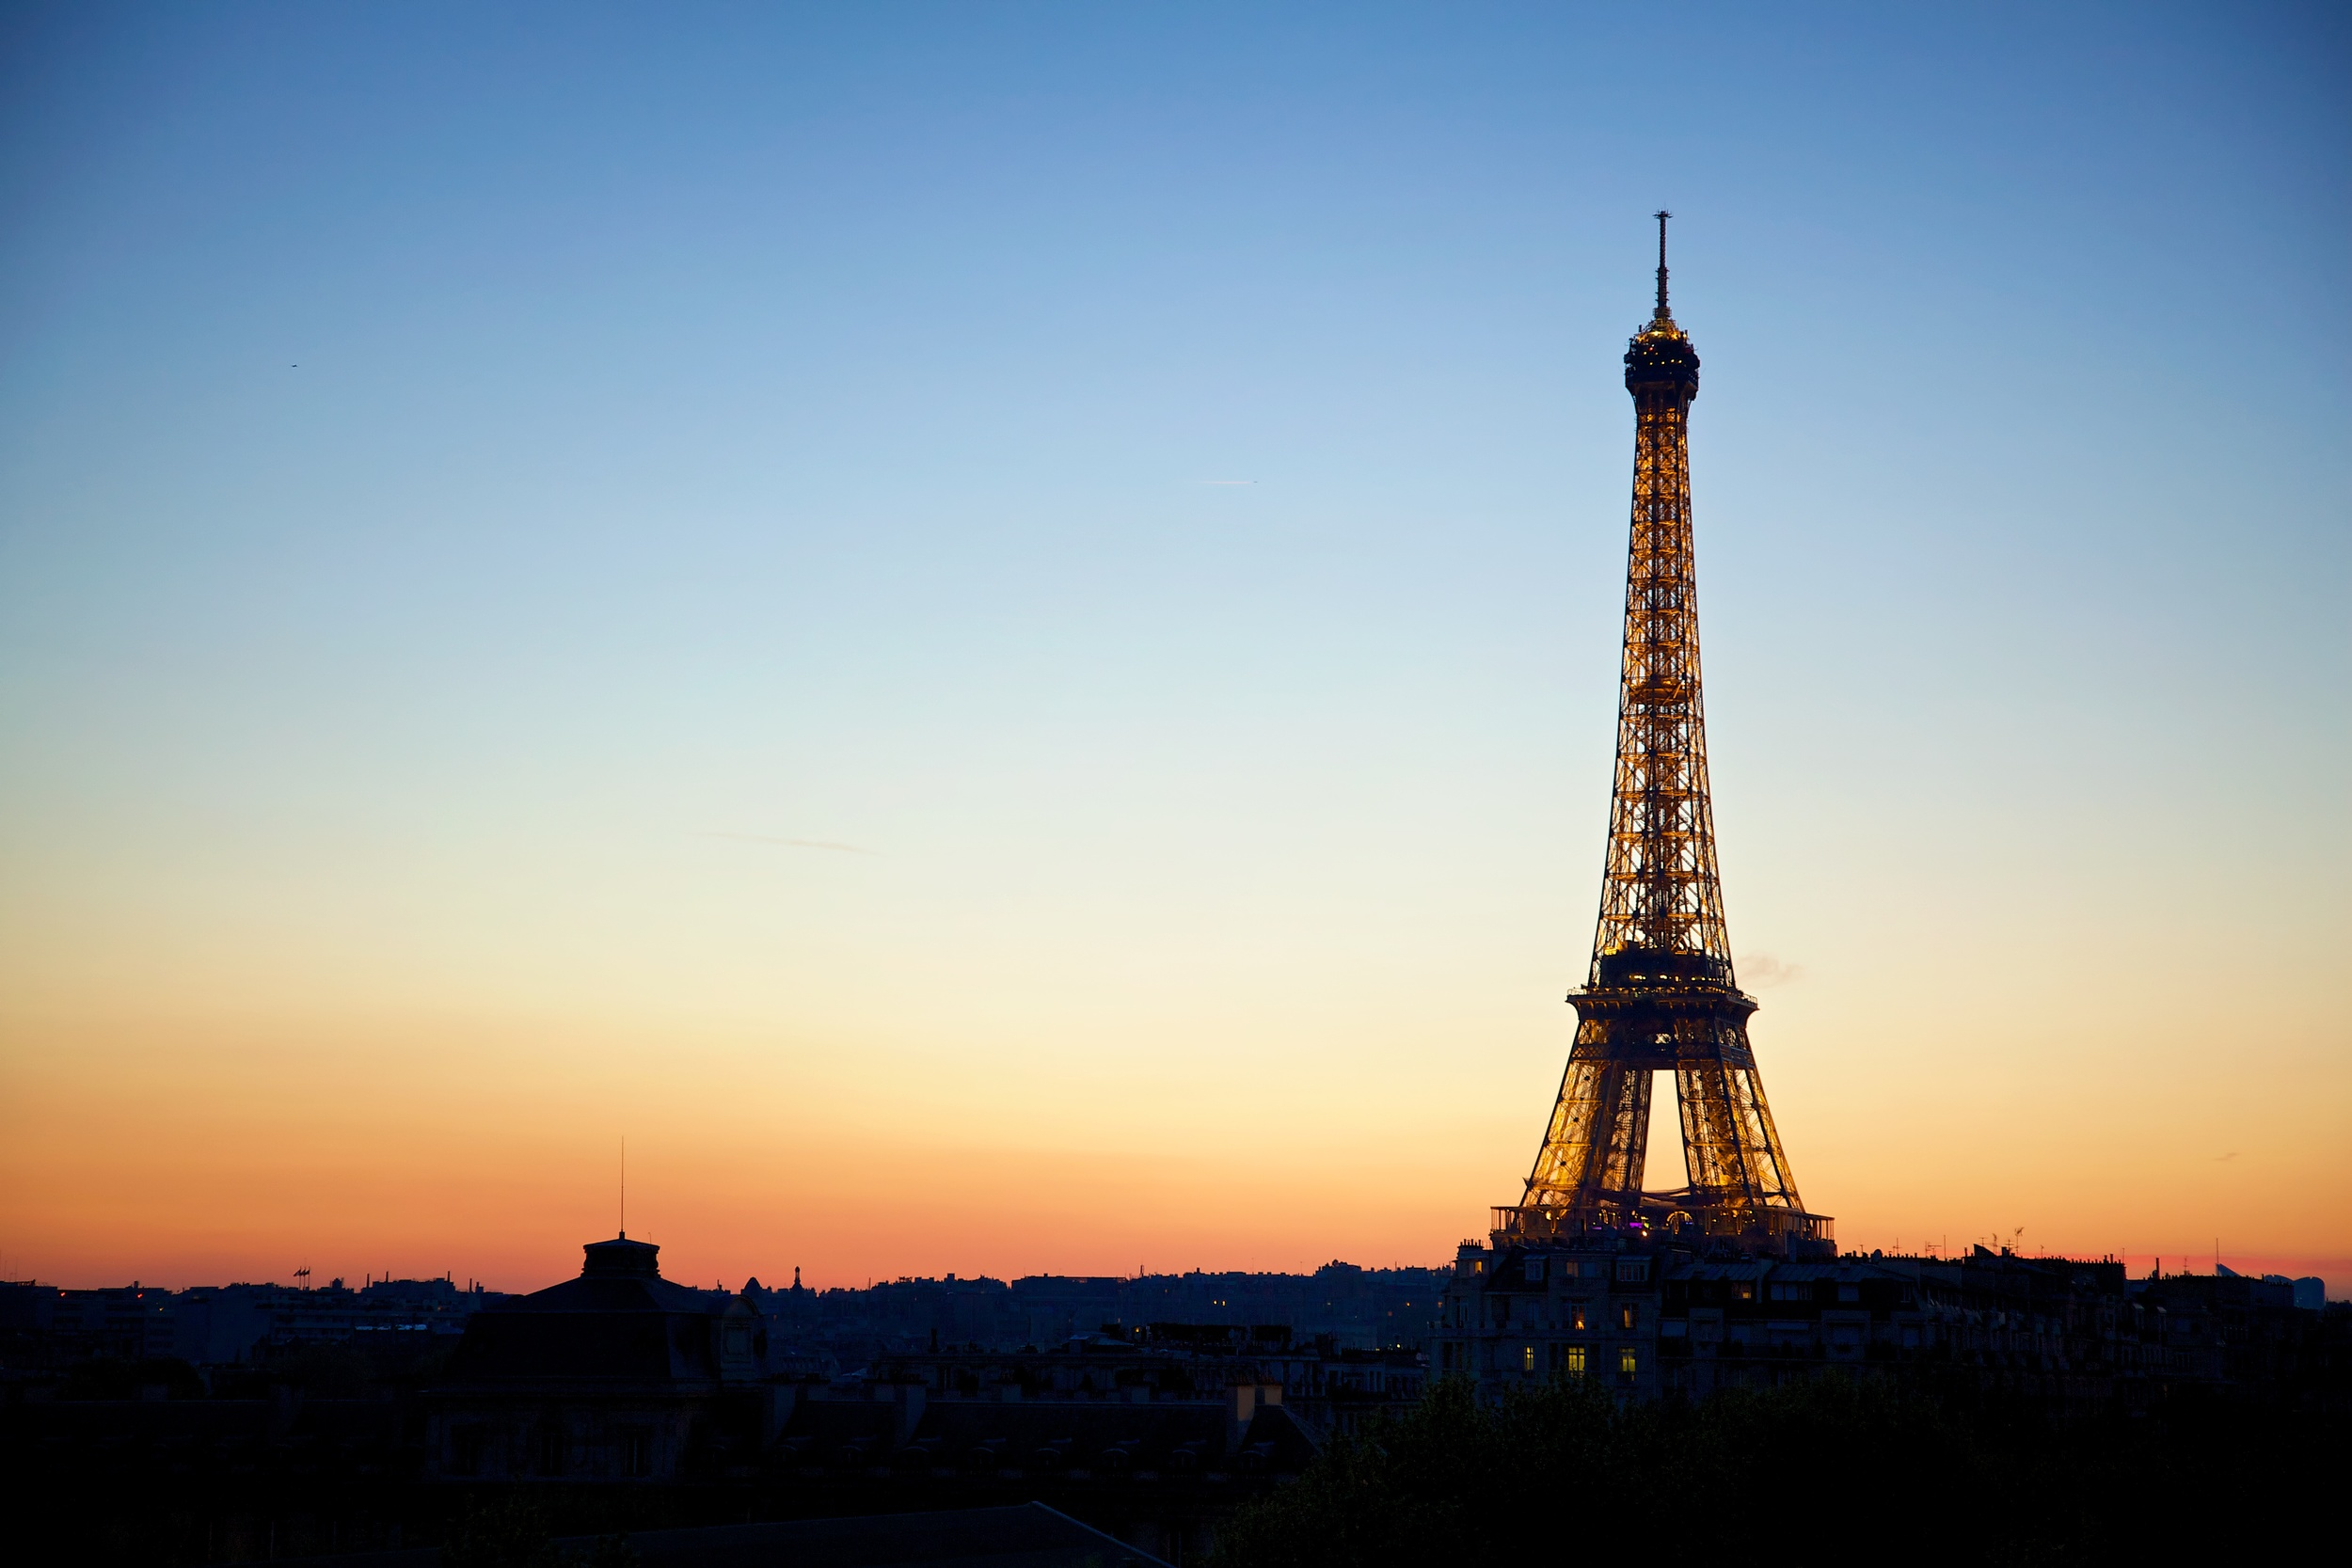 Eiffel Tower Sunset (Paris, France).